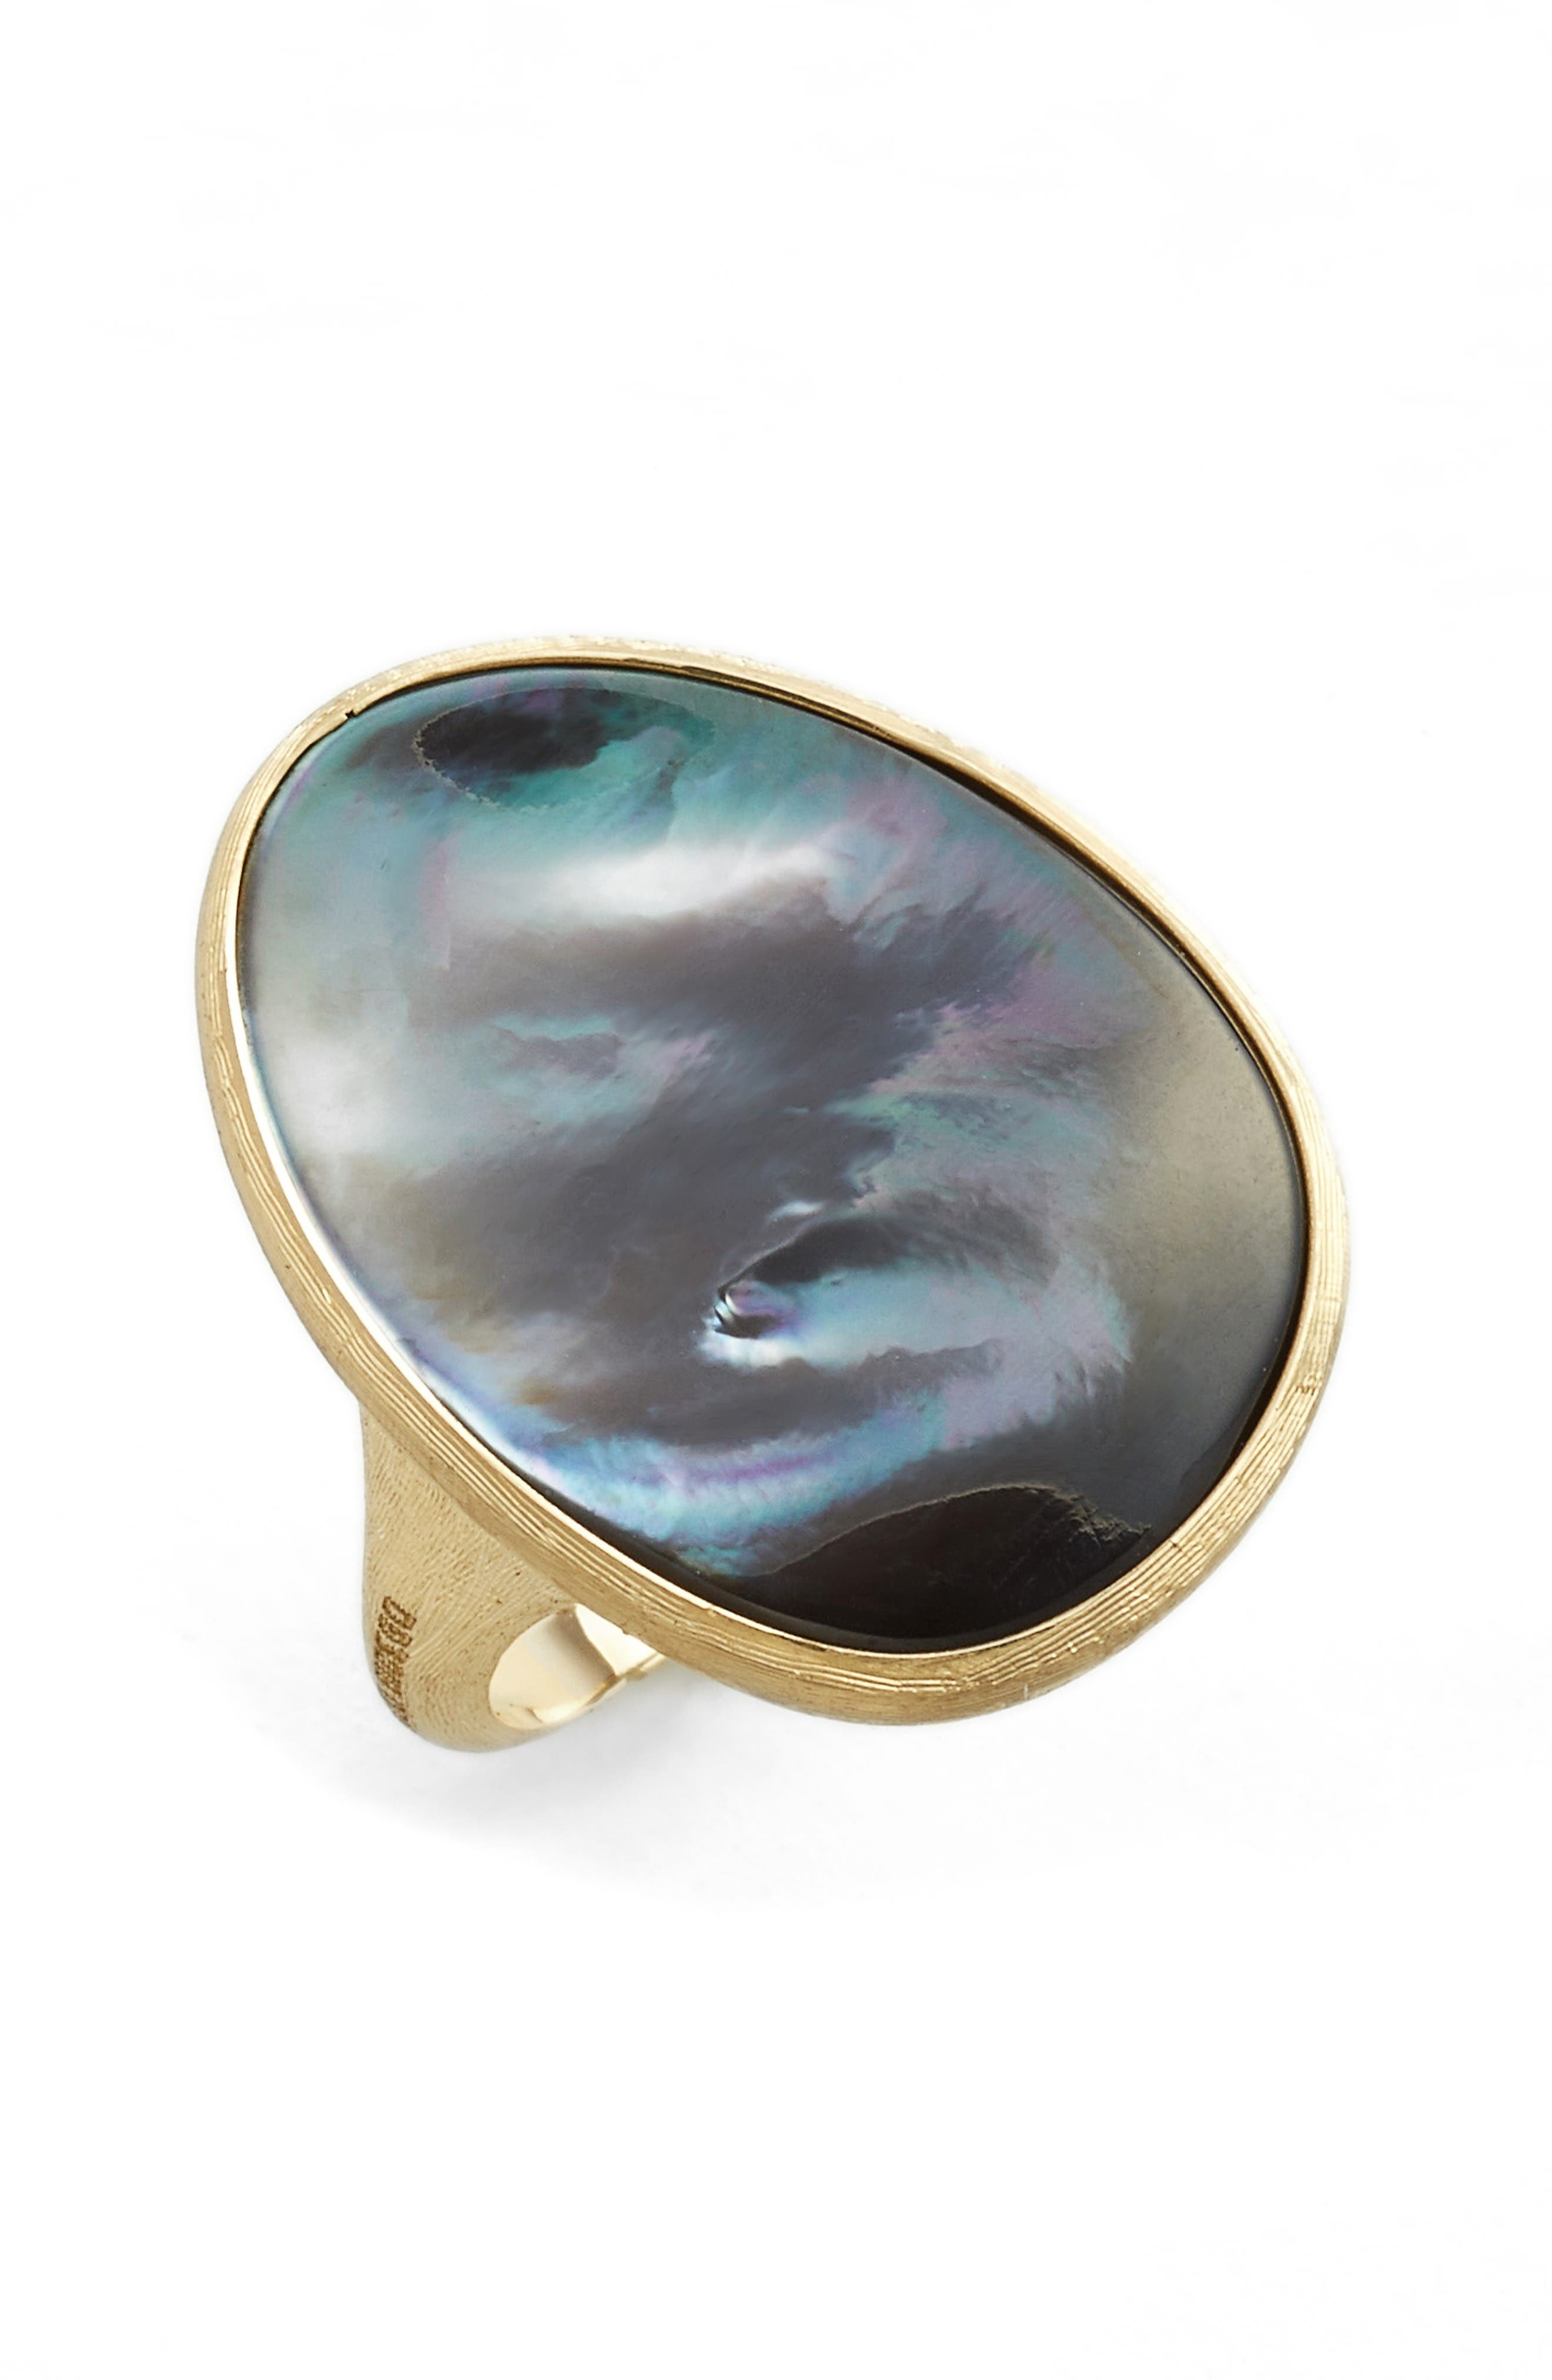 Main Image - Marco Bicego Lunaria Mother of Pearl Ring